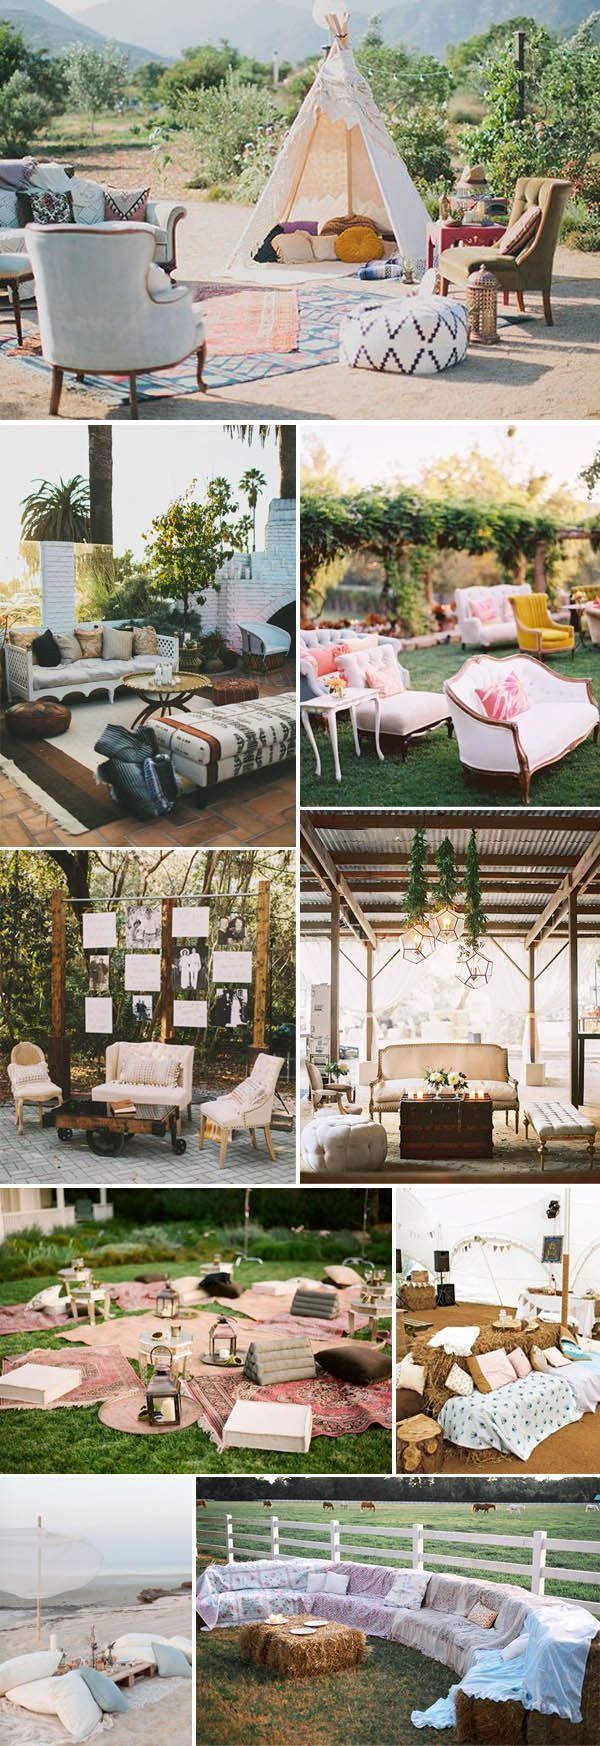 Wedding lounge ideas for your guests to relax and chat. Not only do lounges look cool, but your guests will love having a comfortable place to hang out instead of being stuck at their table